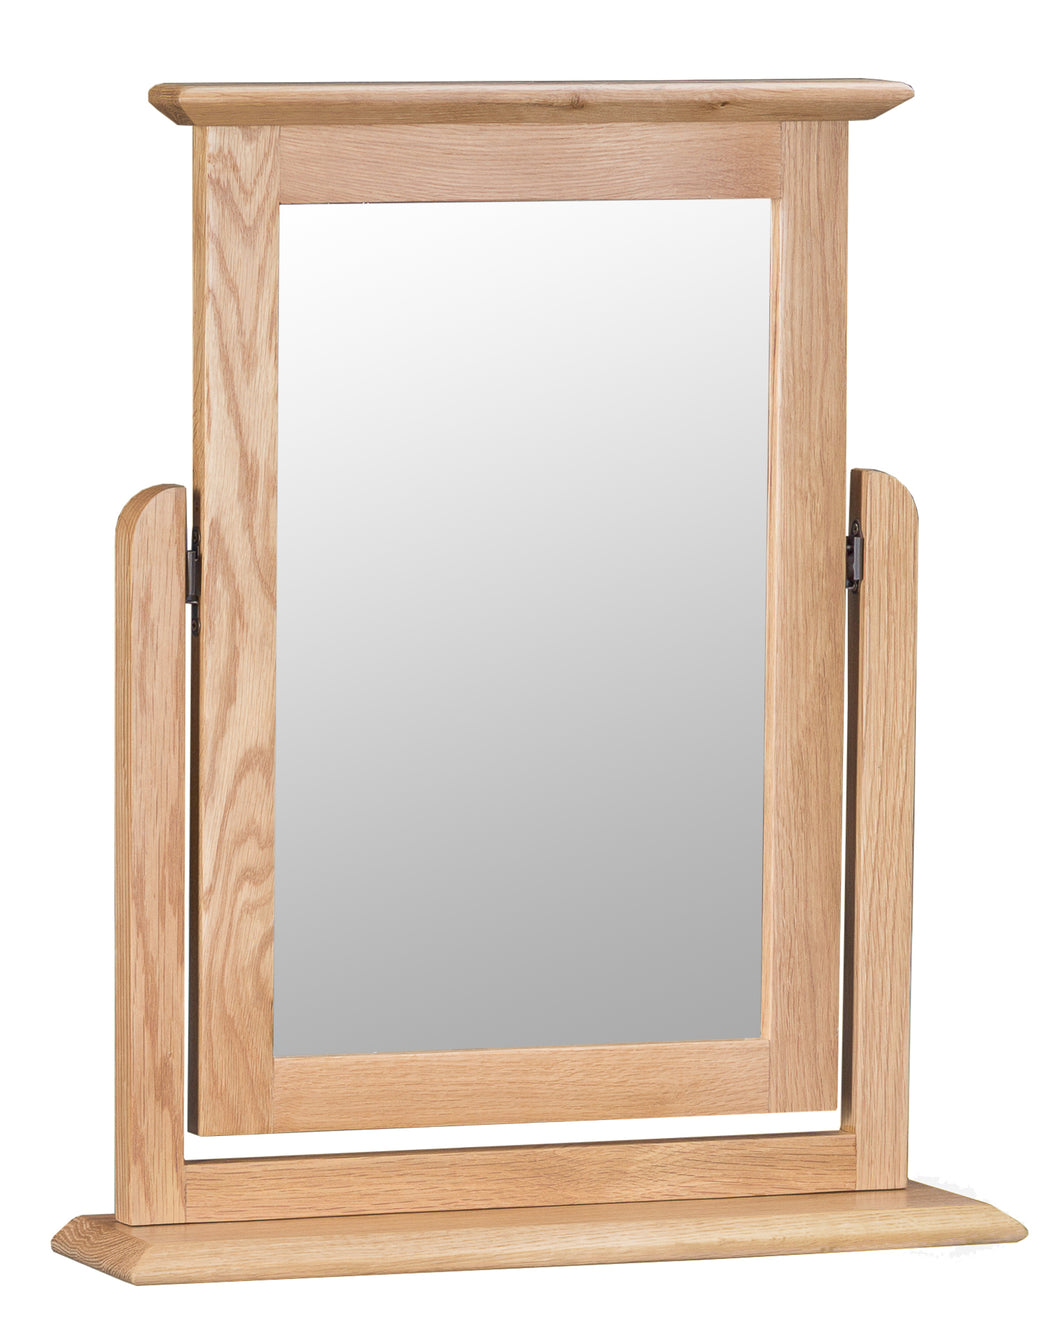 Nordic Bedroom Trinket Mirror - Oak or Painted